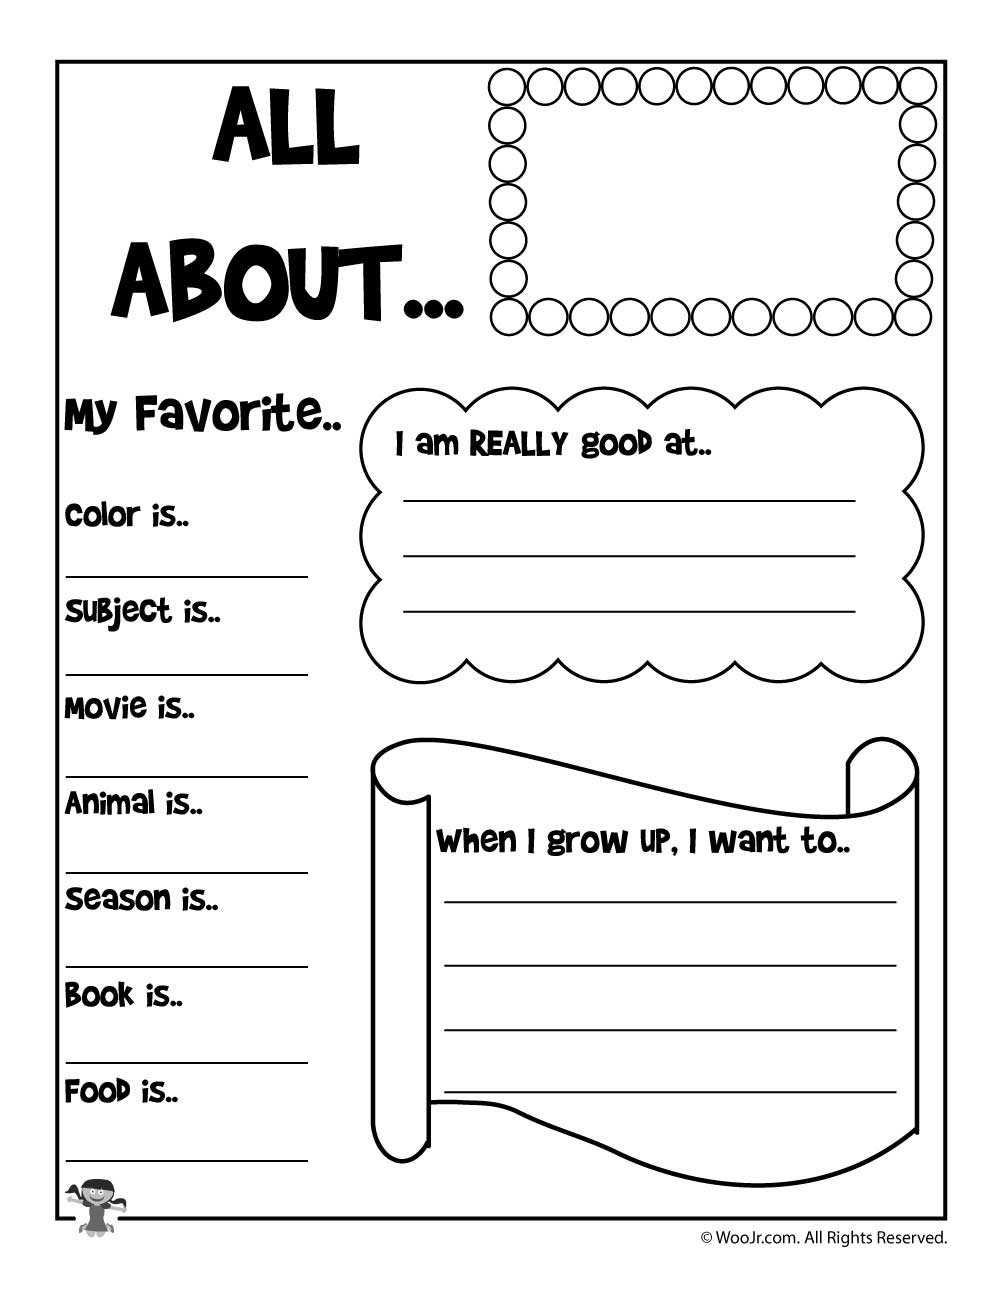 All About Me Printable Worksheet Woo Jr Kids Activities – Printable All About Me Worksheet